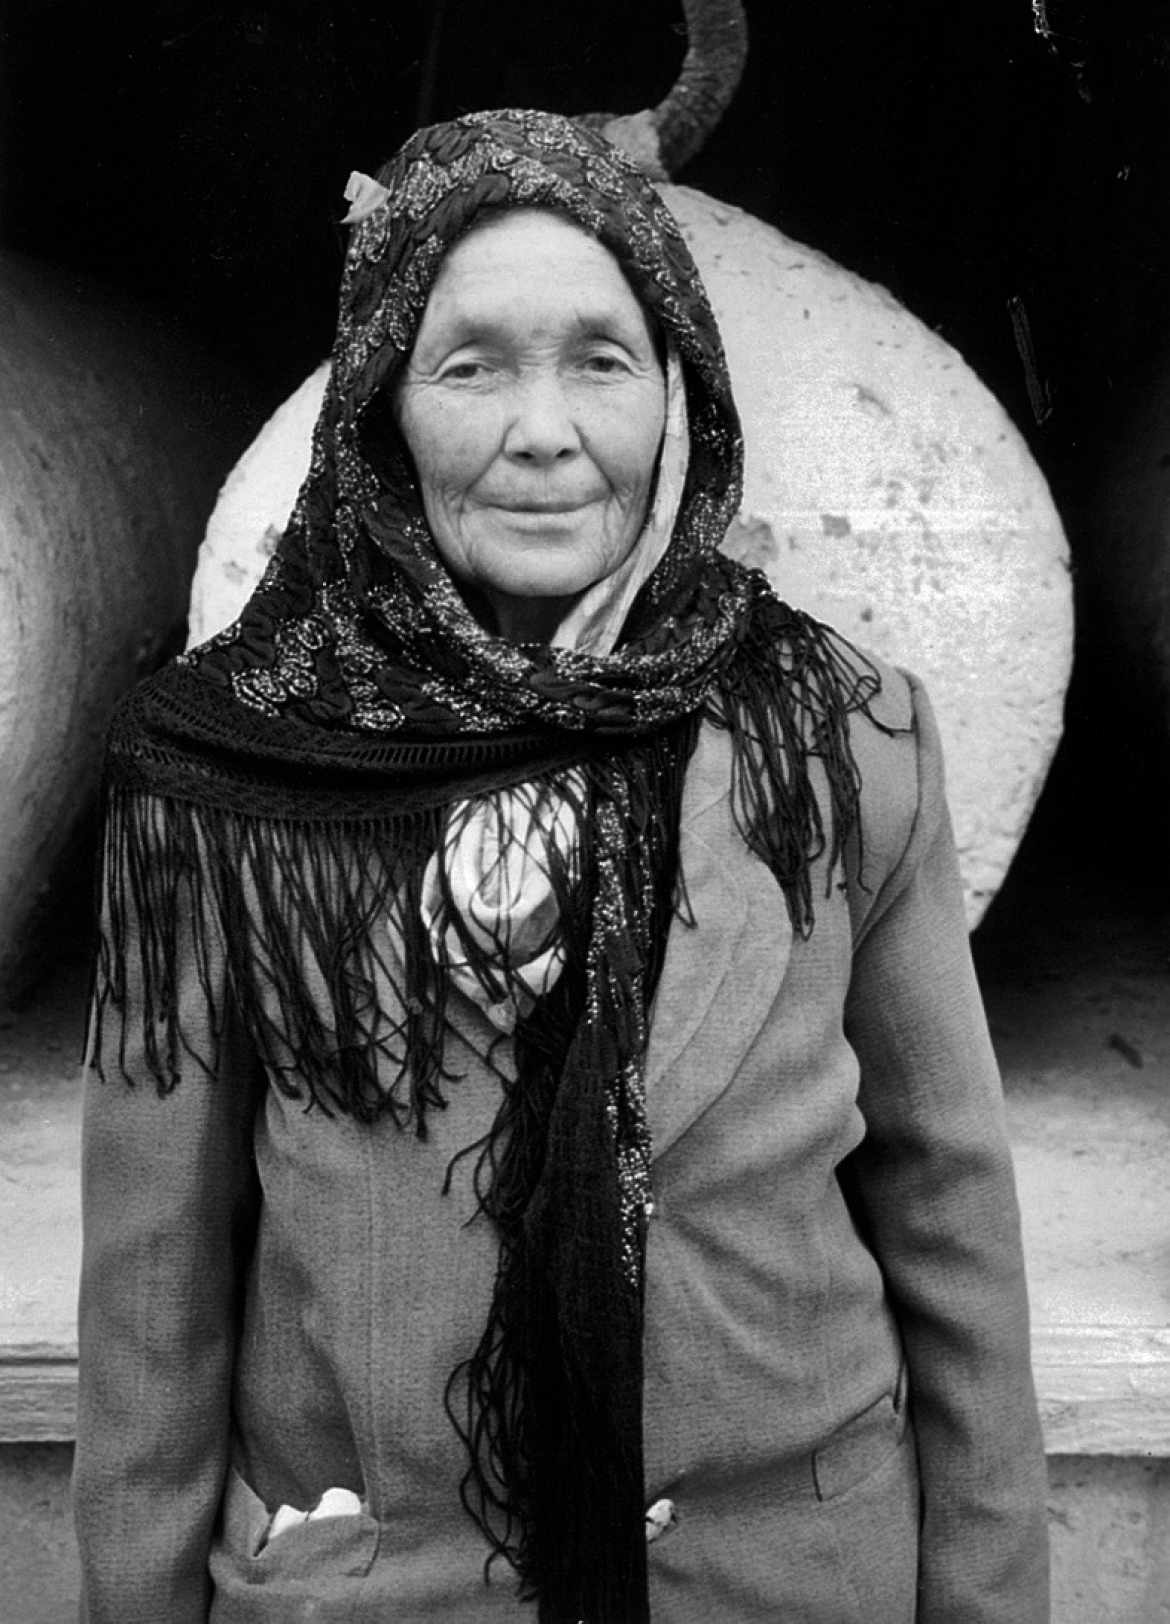 Uyghur woman in front of a saint's tomb/mazar, Kashgar, Xinjiang Uyghur Autonomous Region, China.​